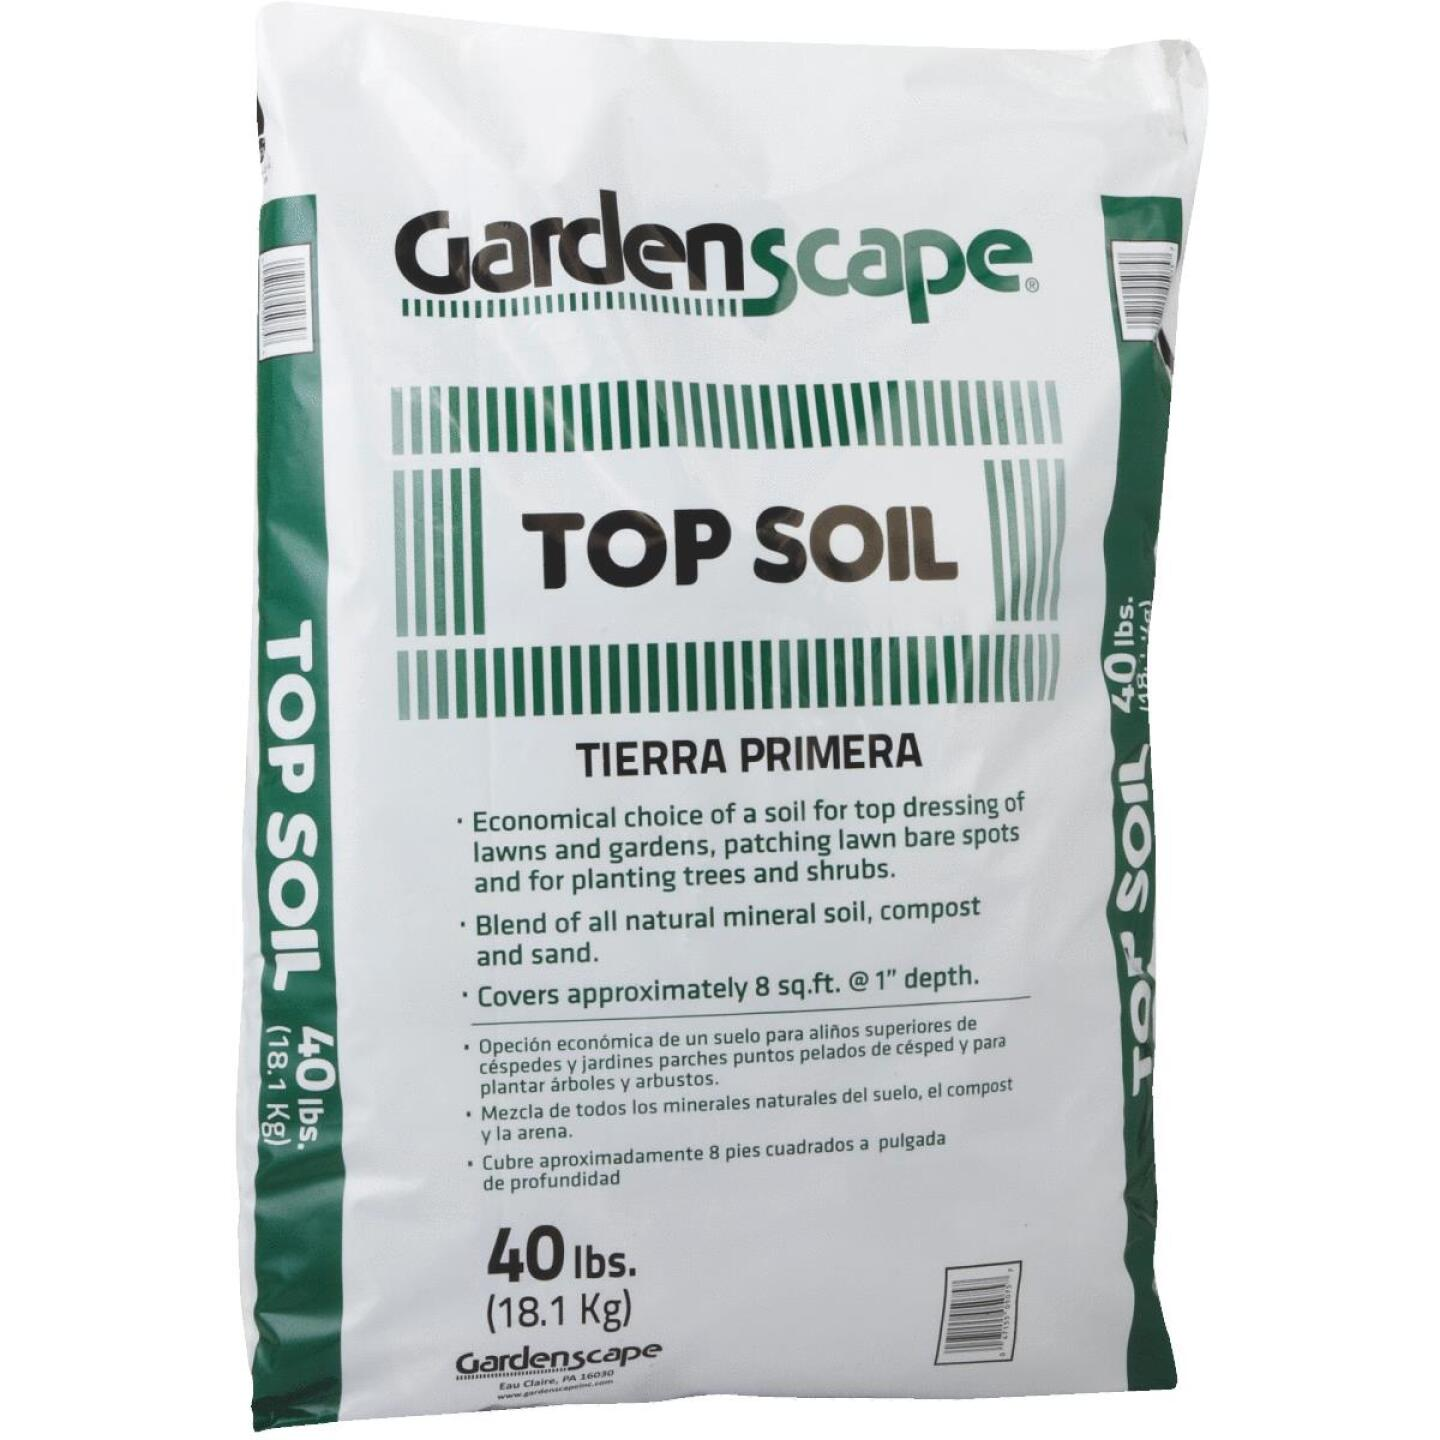 Gardenscape 40 Lb. All Purpose Top Soil Image 3